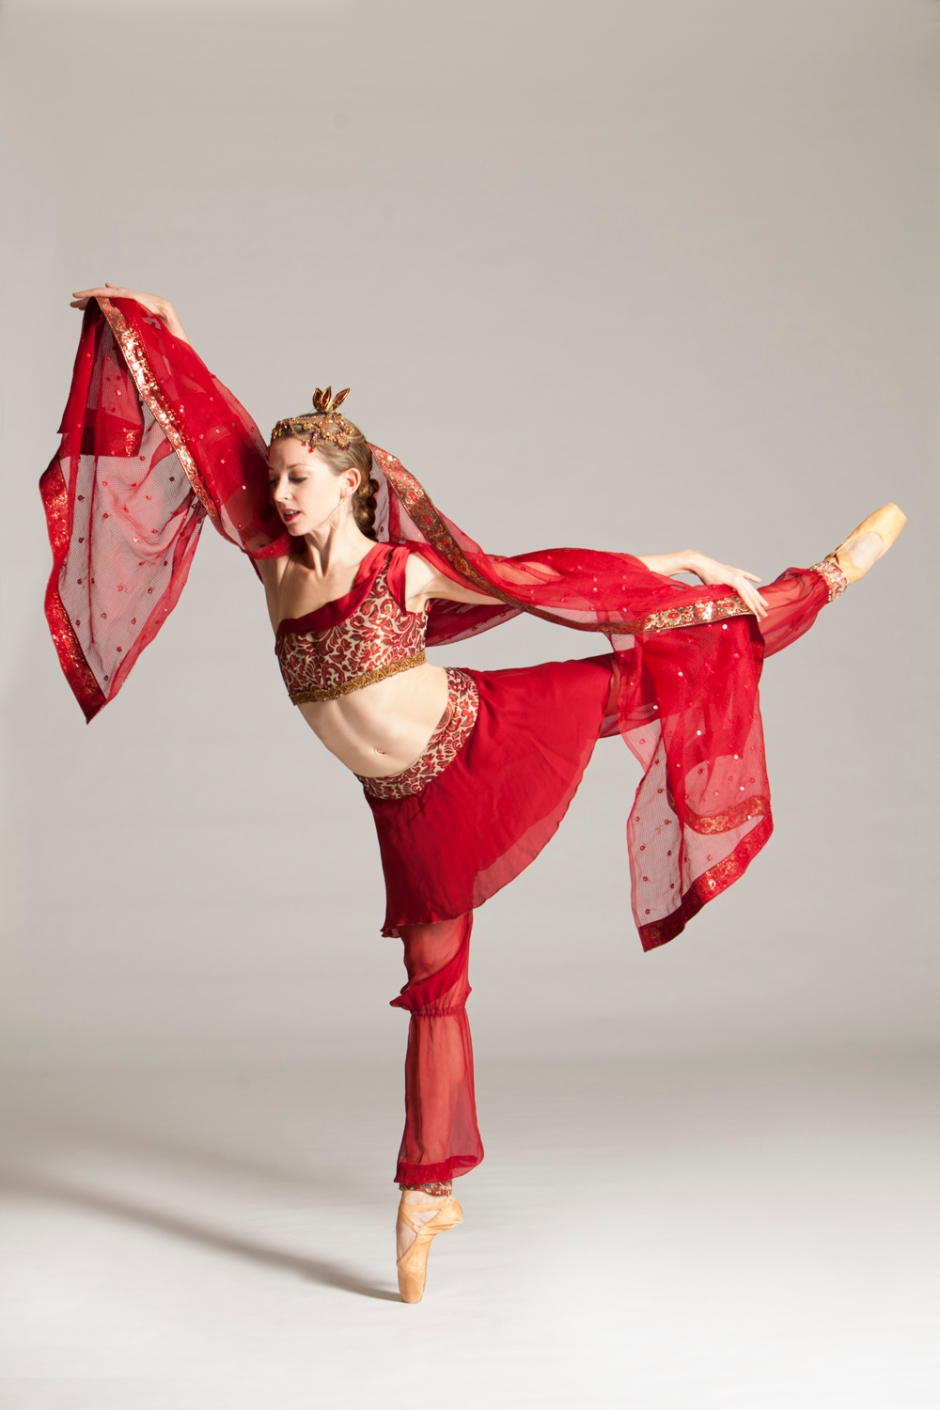 """PBT will perform """"La Bayadere"""" April 17-19, 2015 at the Benedum Center. Pictured is dancer Alexandra Kochis. Photo by Duane Rieder."""